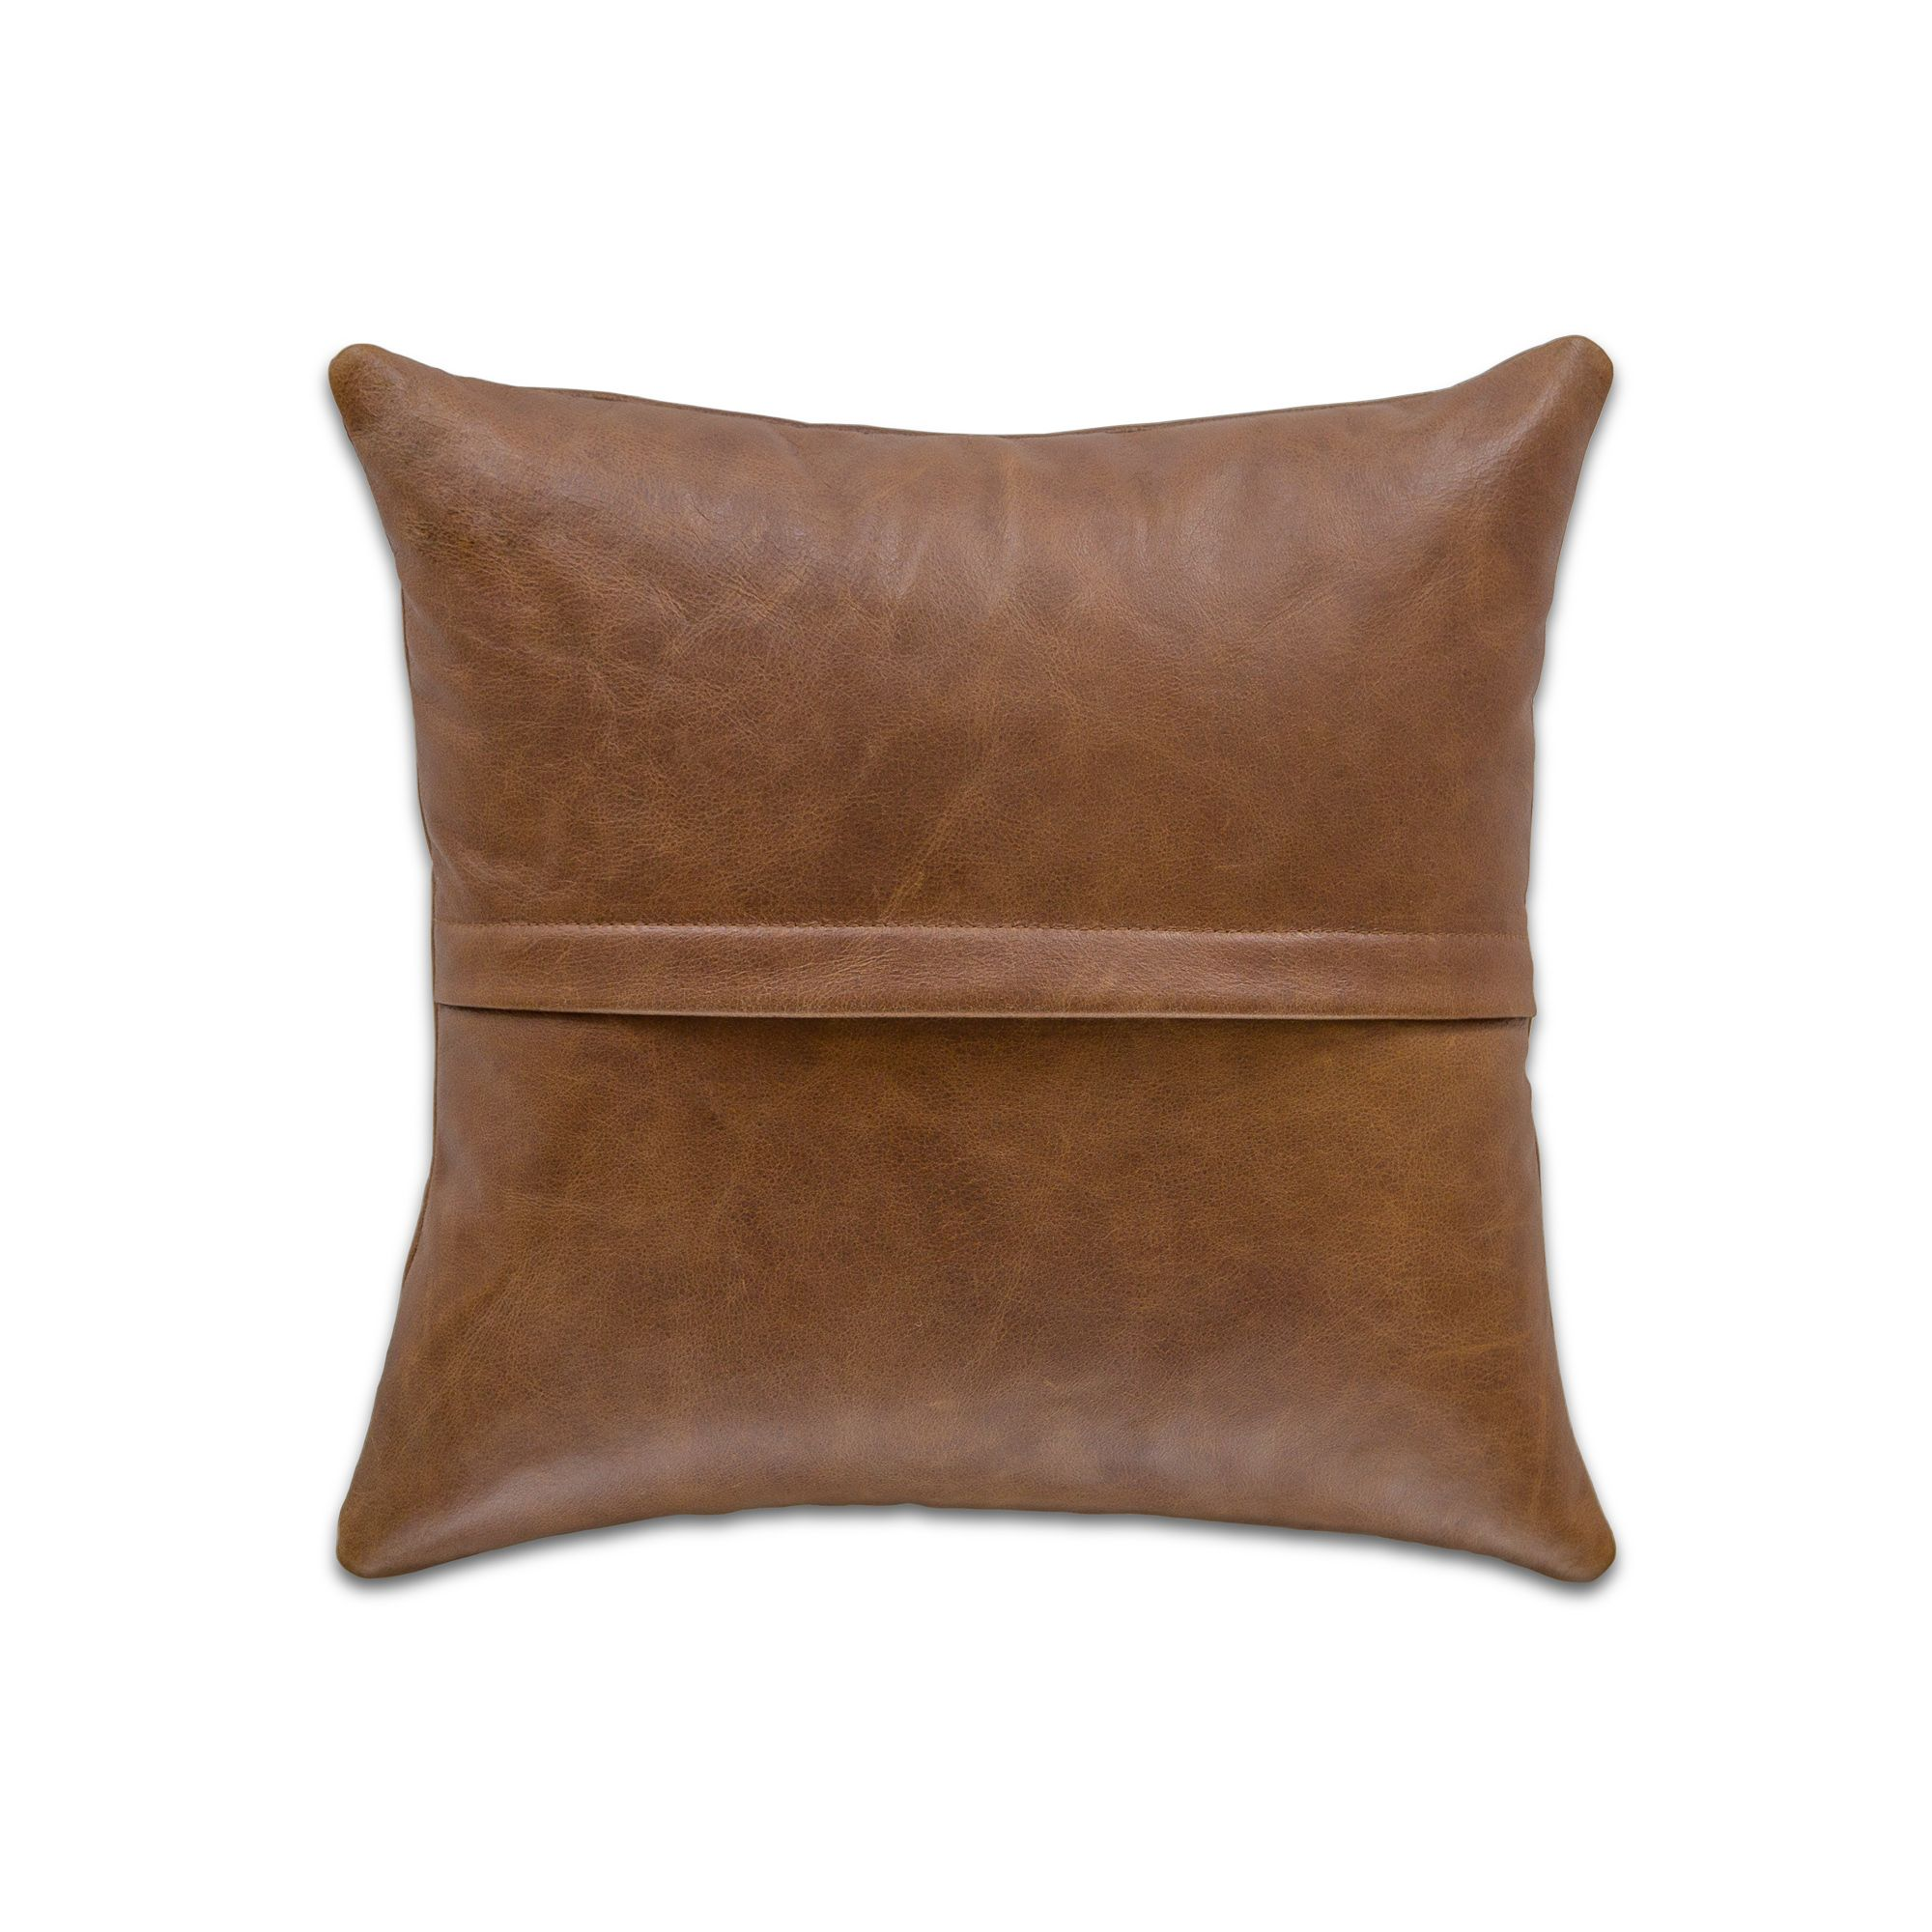 Scrunched Vintage Leather Cushion Cover